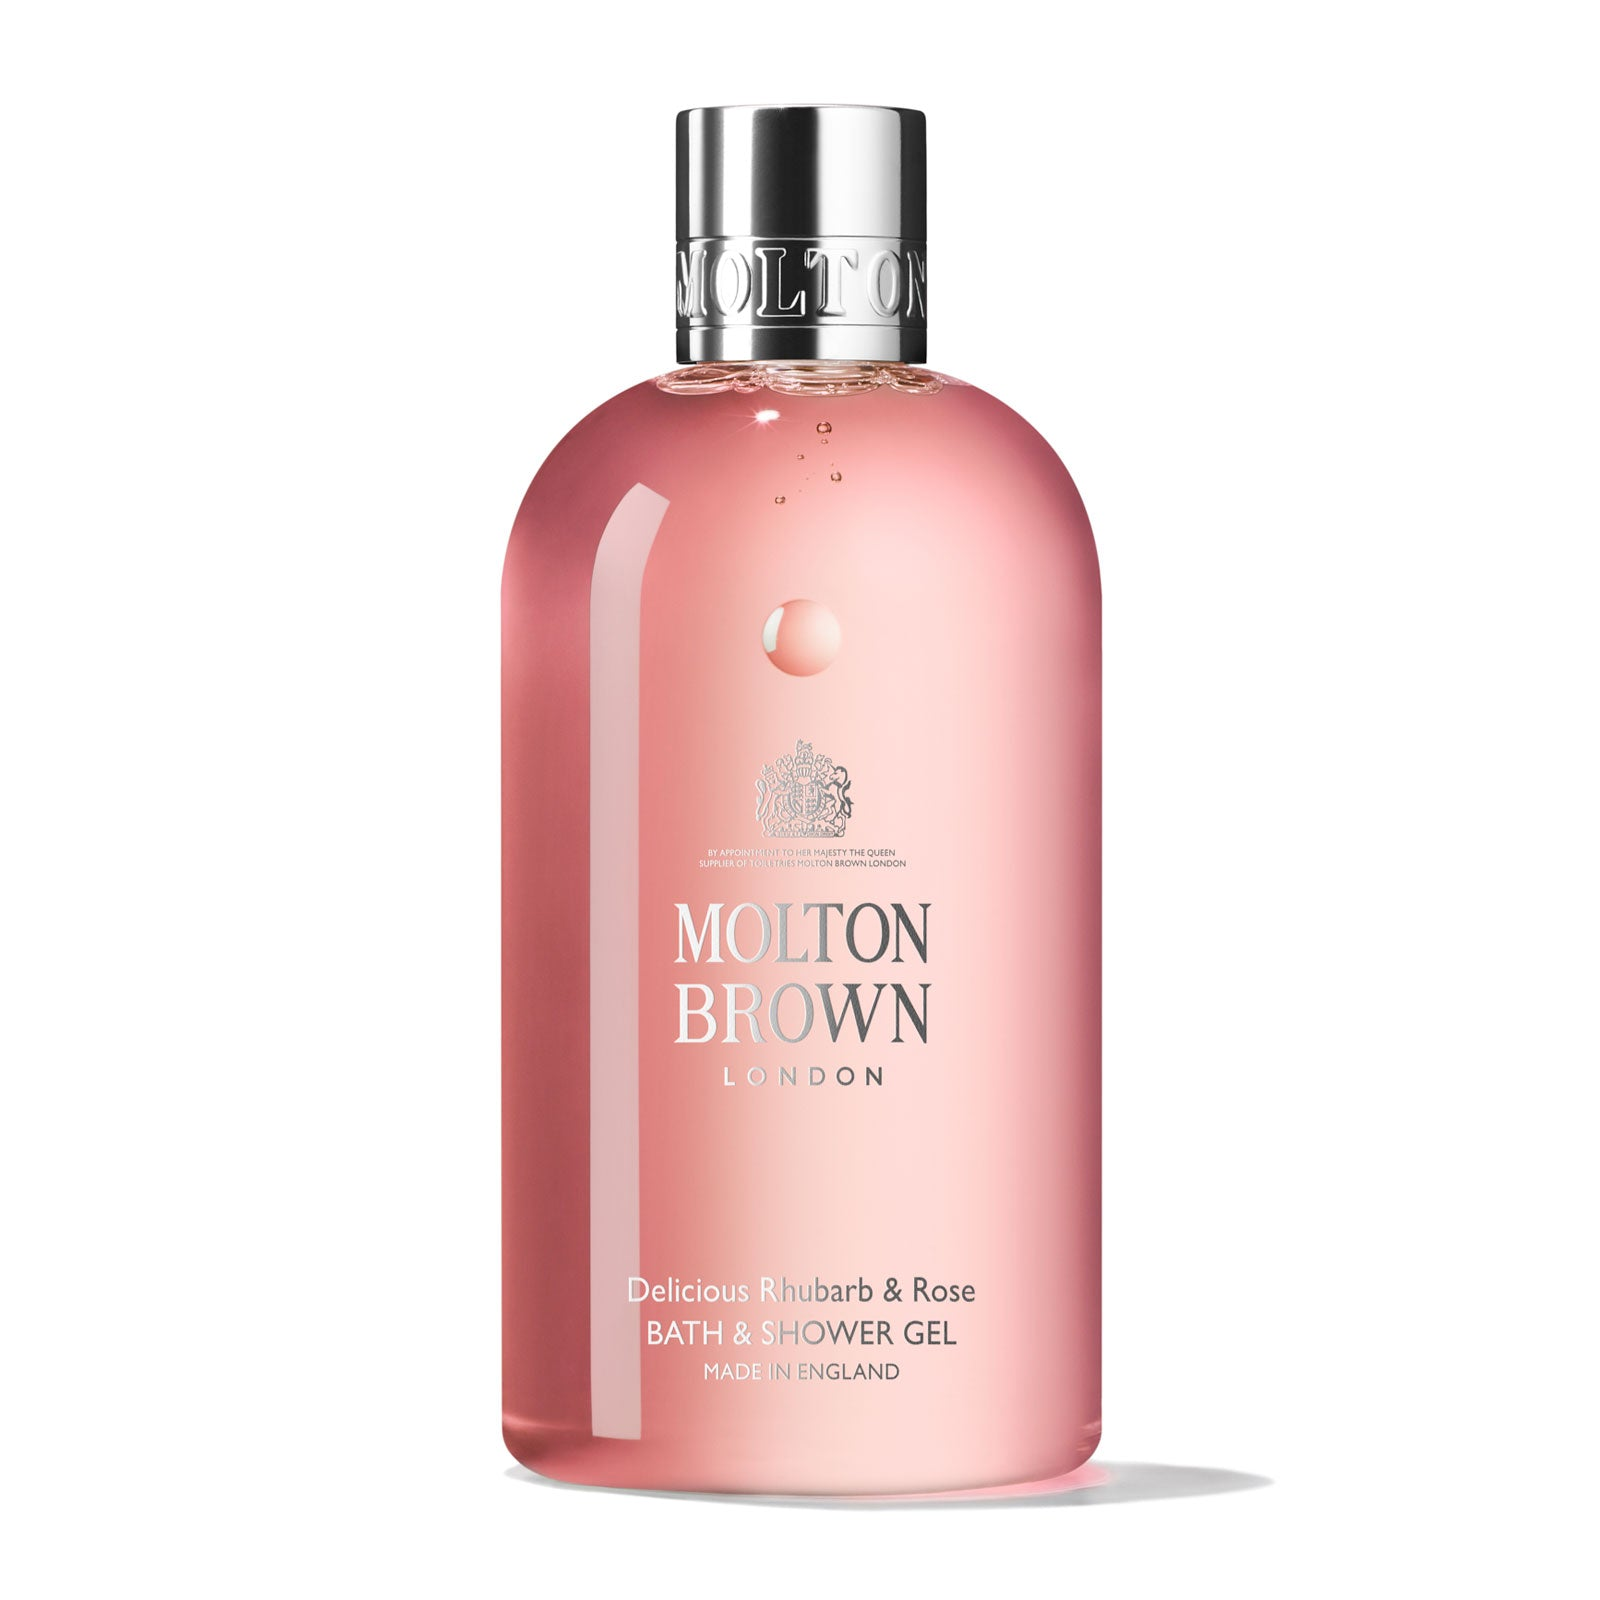 Molton Brown Delicious Rhubarb & Rose Bath & Shower Gel 300ml